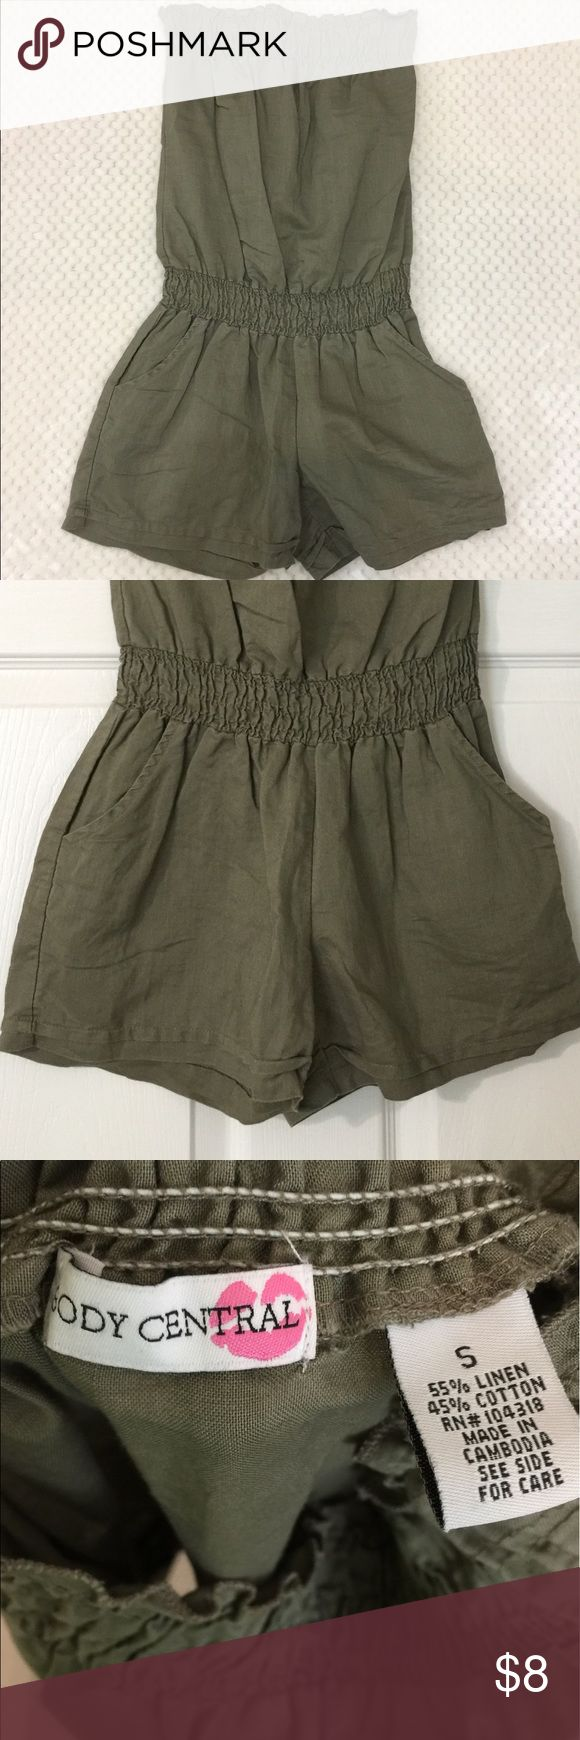 Body Central Olive Green Romper Body Central olive green strapless romper with two front pockets and elastic top. Body Central Shorts